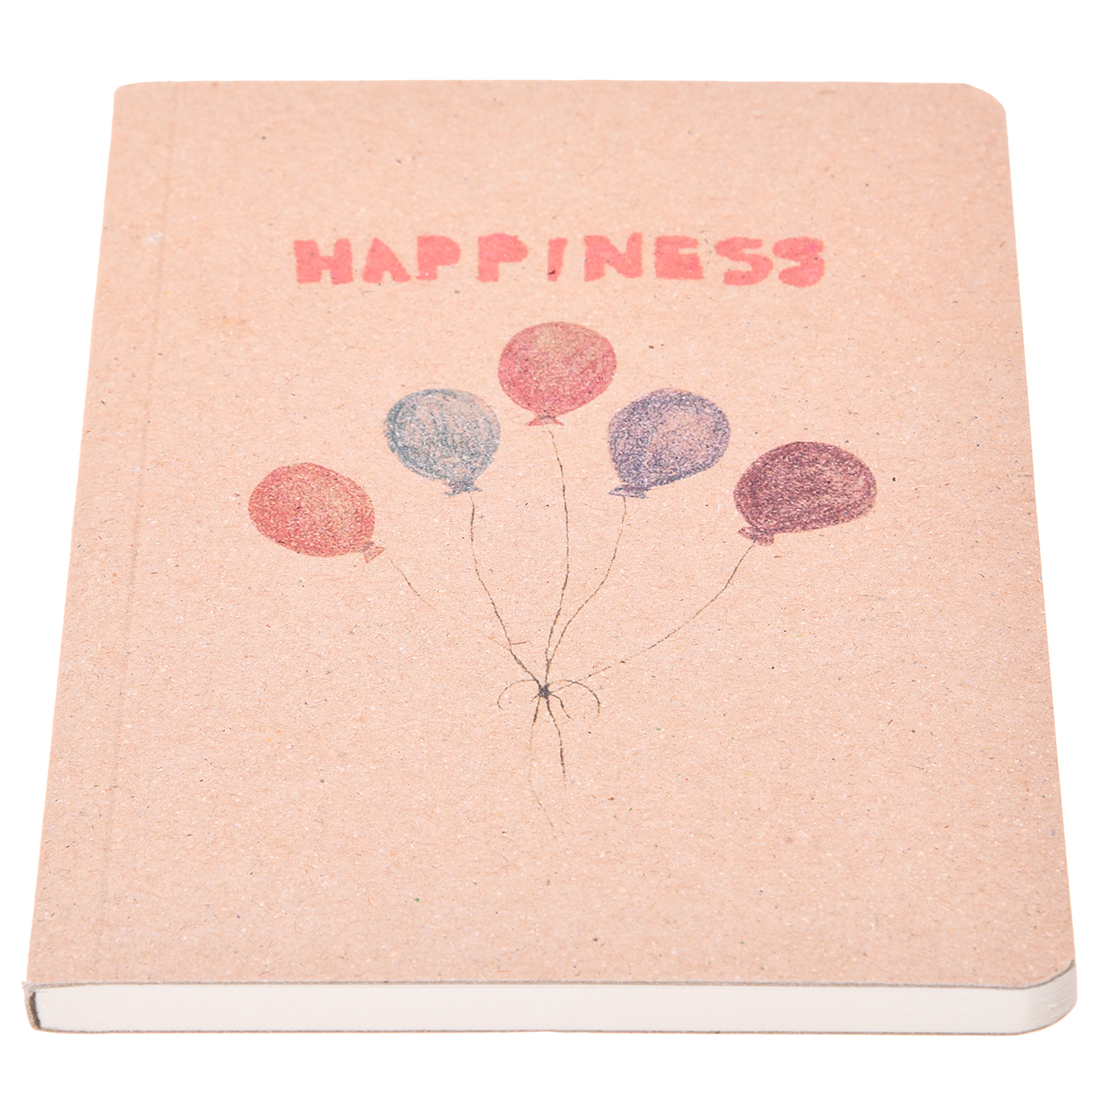 12.5*9cm Old painting pretty nice laptops daily book for writing office school stationery supplies (Balloon)